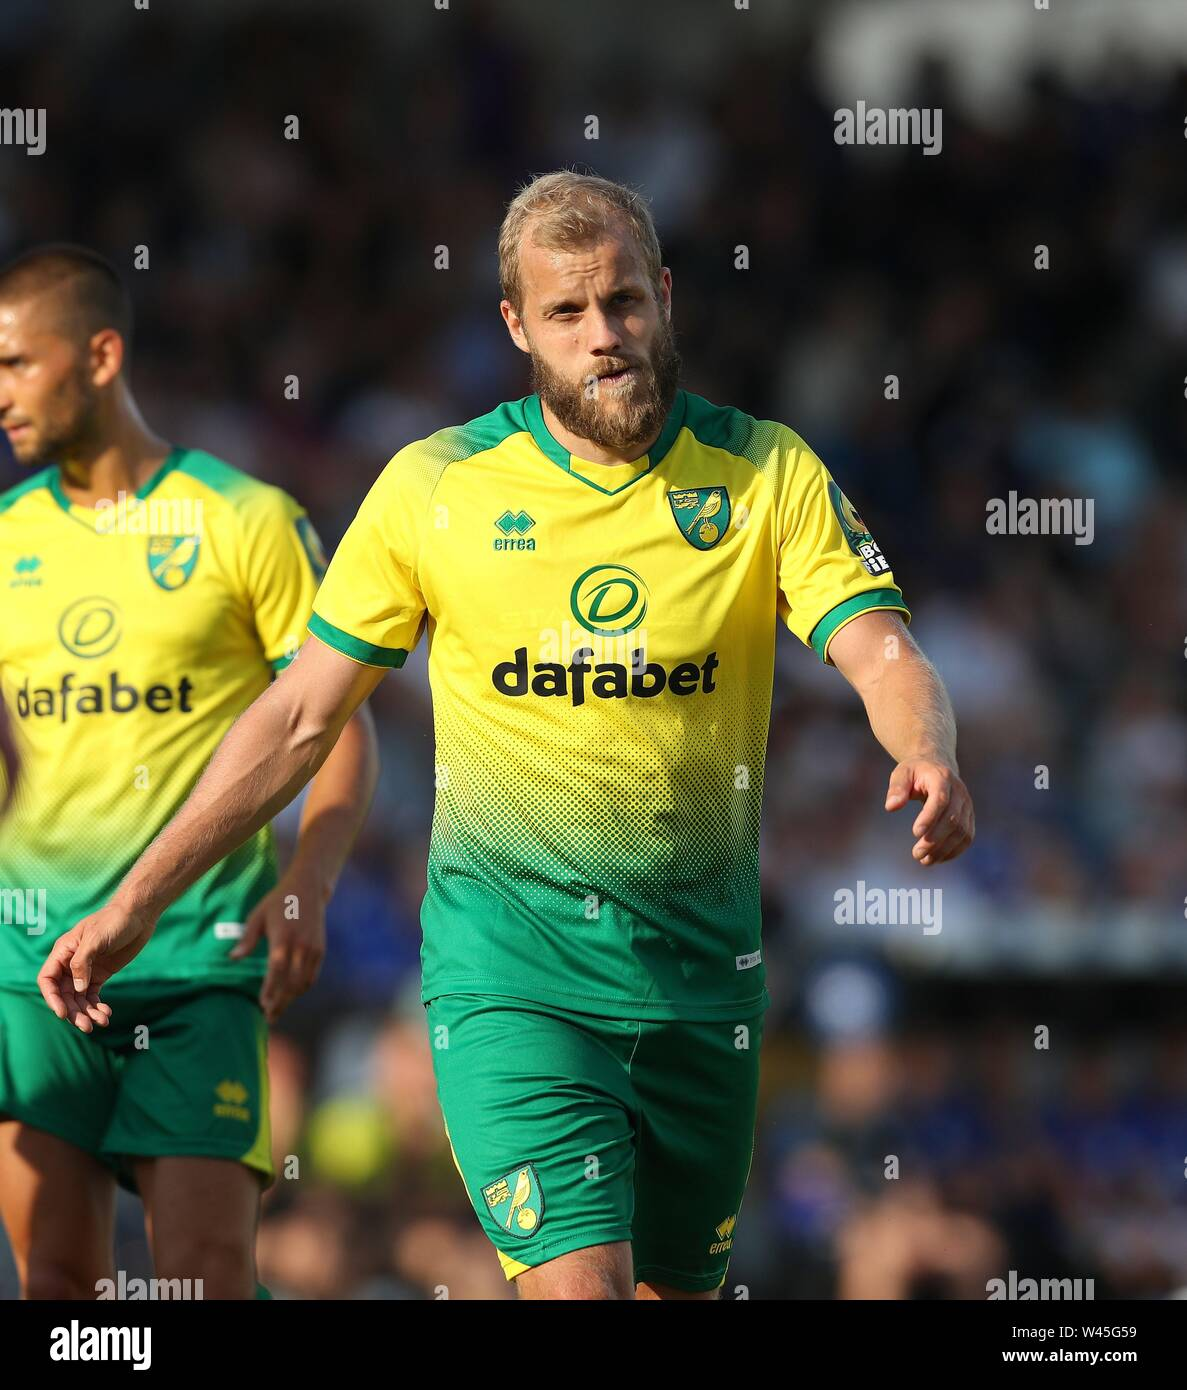 Lotte, Deutschland. 19th July, 2019. firo: 19.07.2019, football, 1.Bundesliga, season 2019/2020, friendly match, FC Schalke 04 - Norwich City Teemu PUKKI, Norwich, half figure | usage worldwide Credit: dpa/Alamy Live News - Stock Image